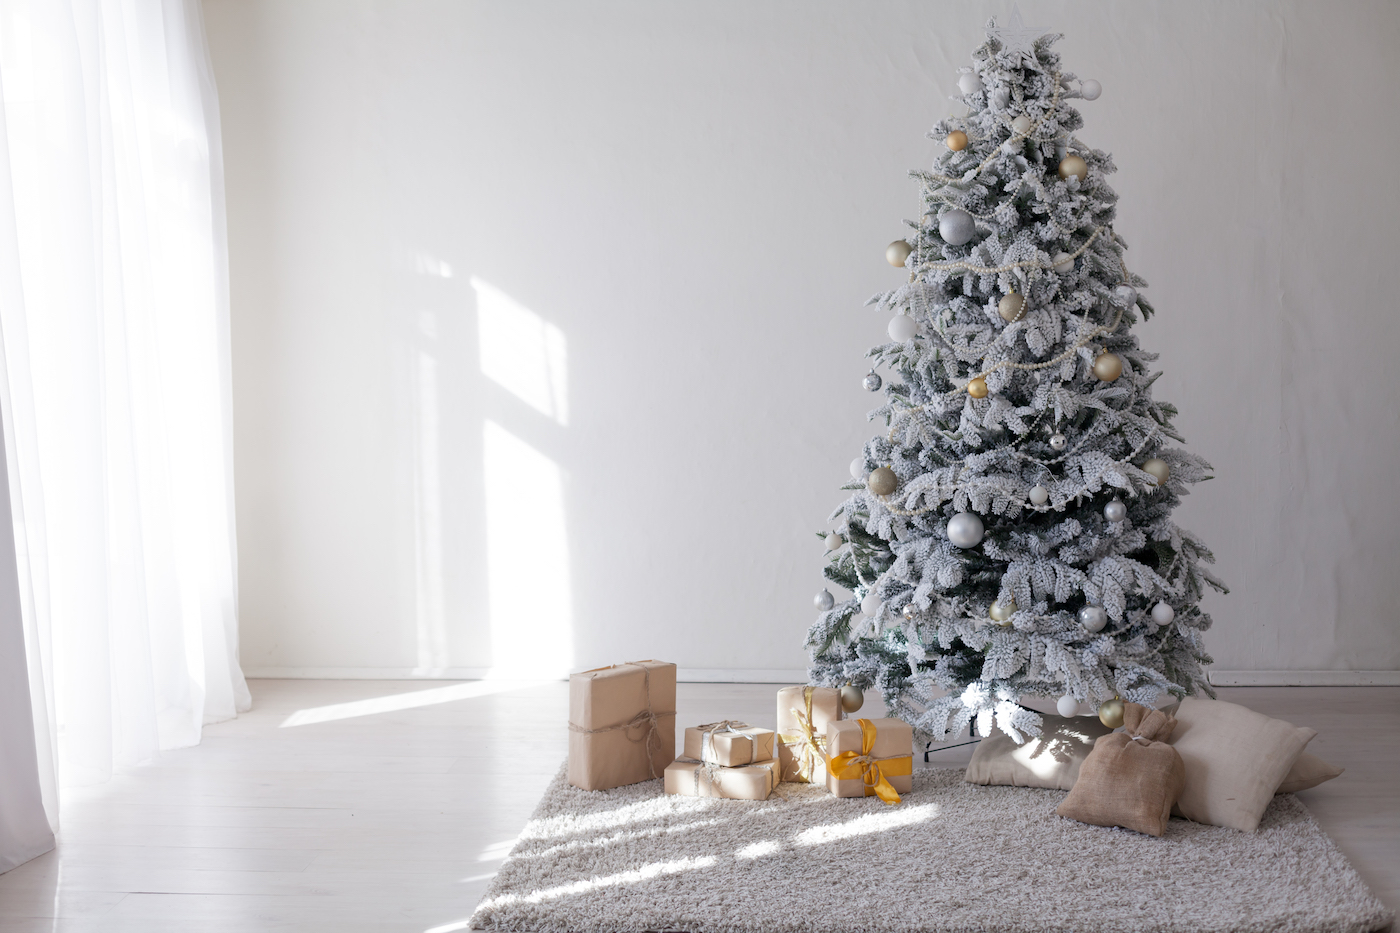 You Can Now Order a Real, Full-Size Christmas Tree on Amazon